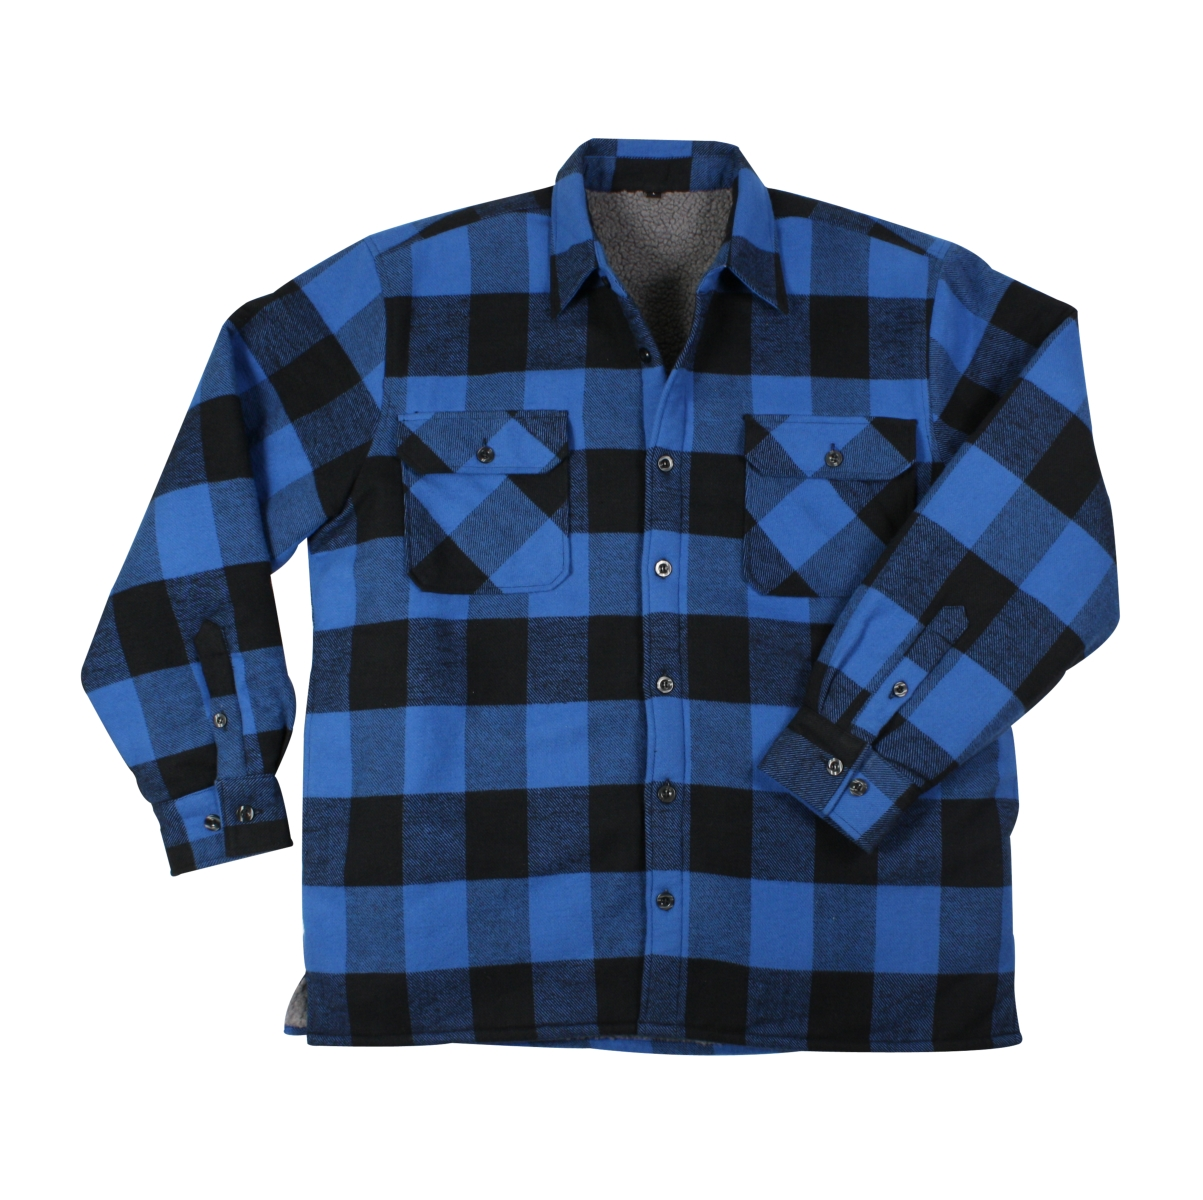 Wrangler Jackets: Men's 3W MB Medium Blue Insulated Hooded Flannel Jacket. Forget the Retriever flannel is a working man's best friend. Tough, rugged, and warm, you can always count on quality flannel to help you get the job done in comfort.5/5(1).